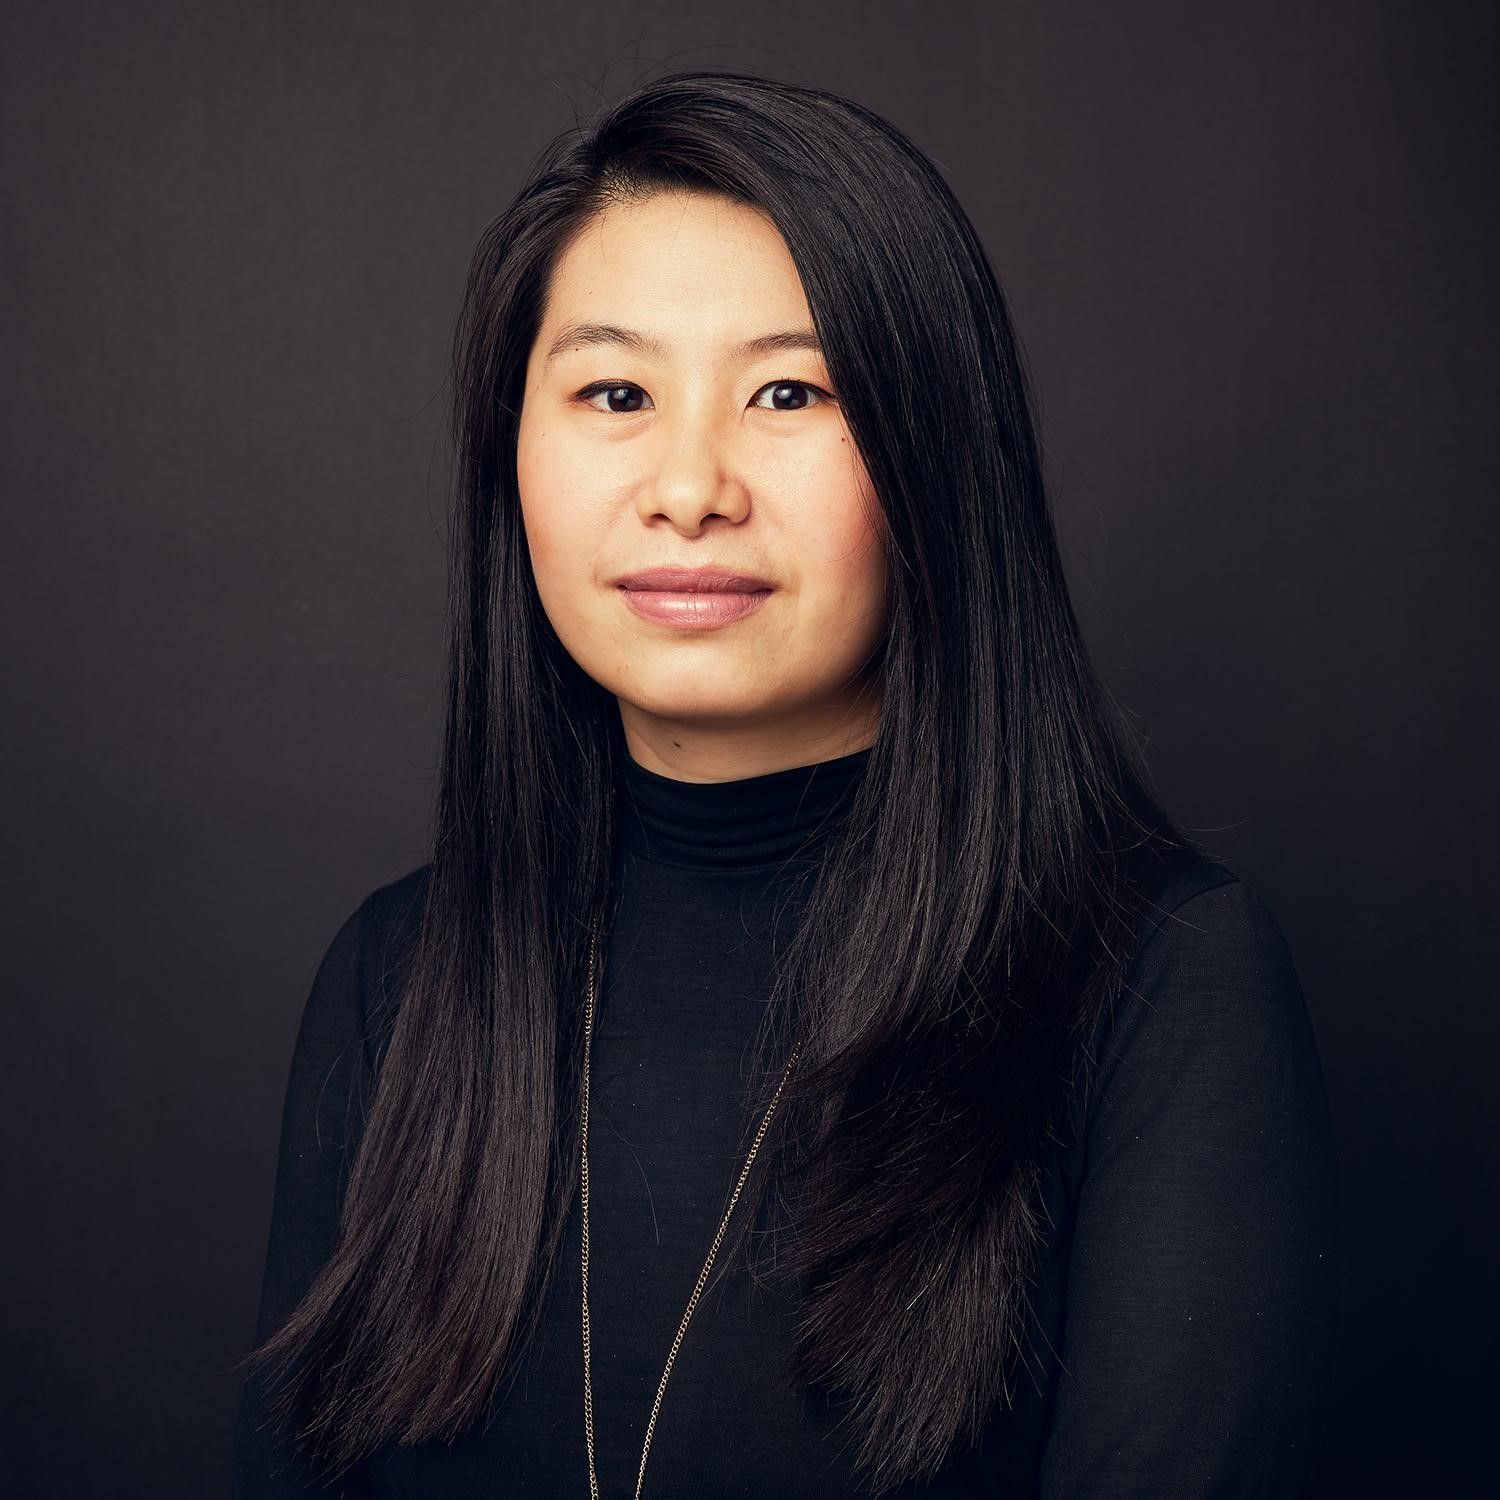 Sharon Lo, Head of Long tTerm iInternational cClimate sStrategy in the Department of Business Energy and Industrial Strategy (BEIS) and Co-Chair of the Faith and Minority Ethnic Network (FAME).